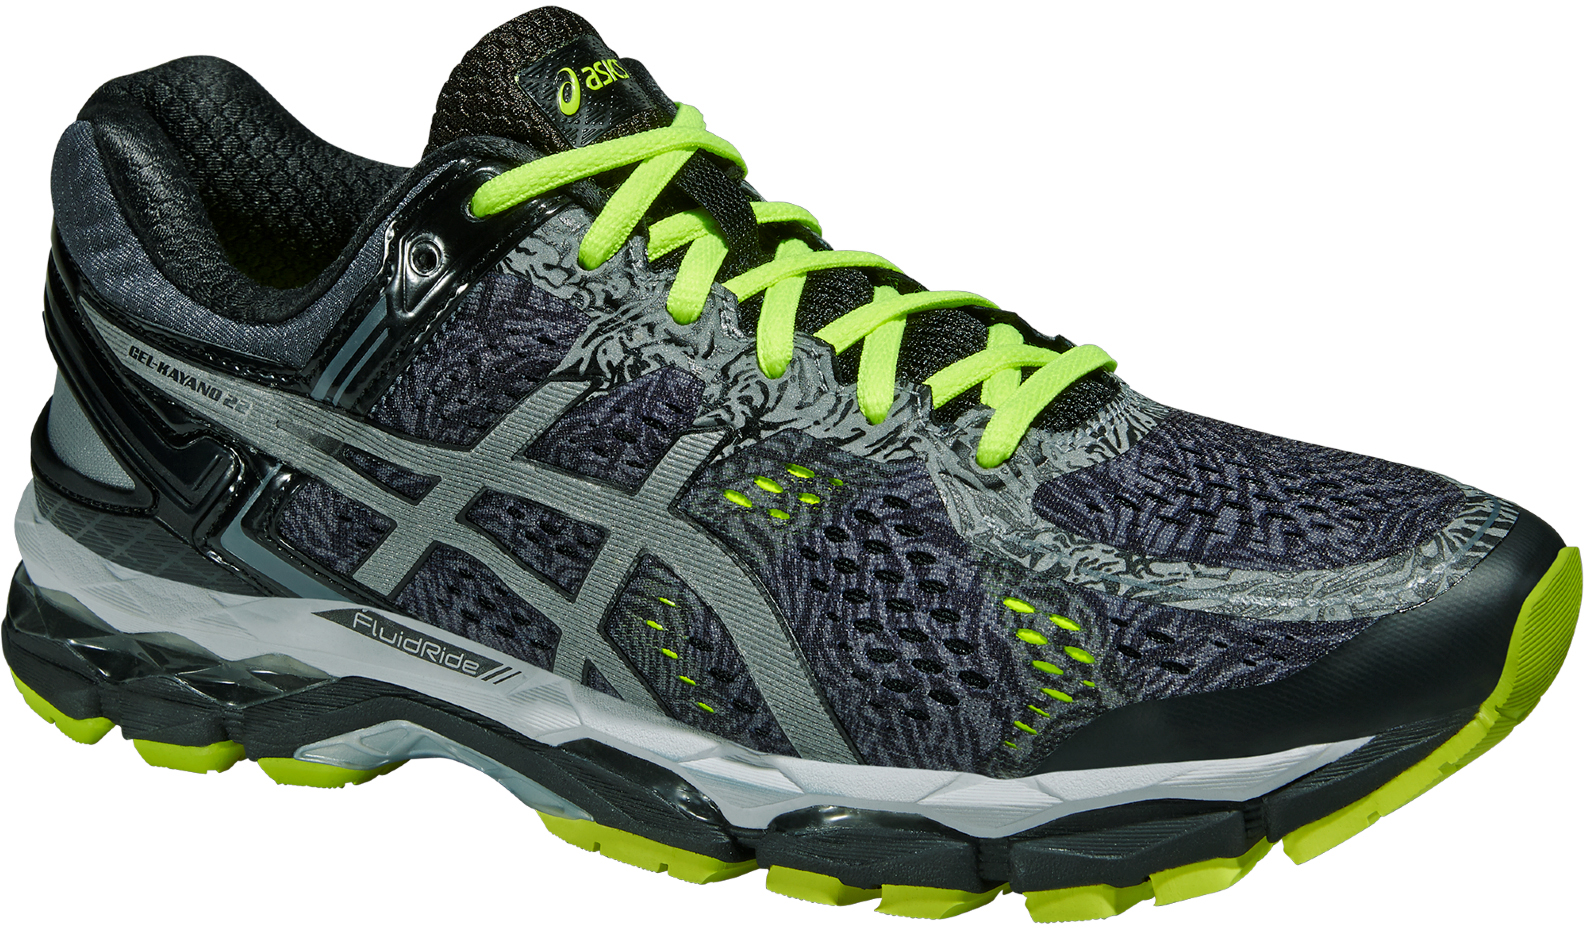 Asics Gel Kayano 22 Lite Show Shoes (AW15  Asics Gel Kayano 22 Lite Show Shoes (AW15